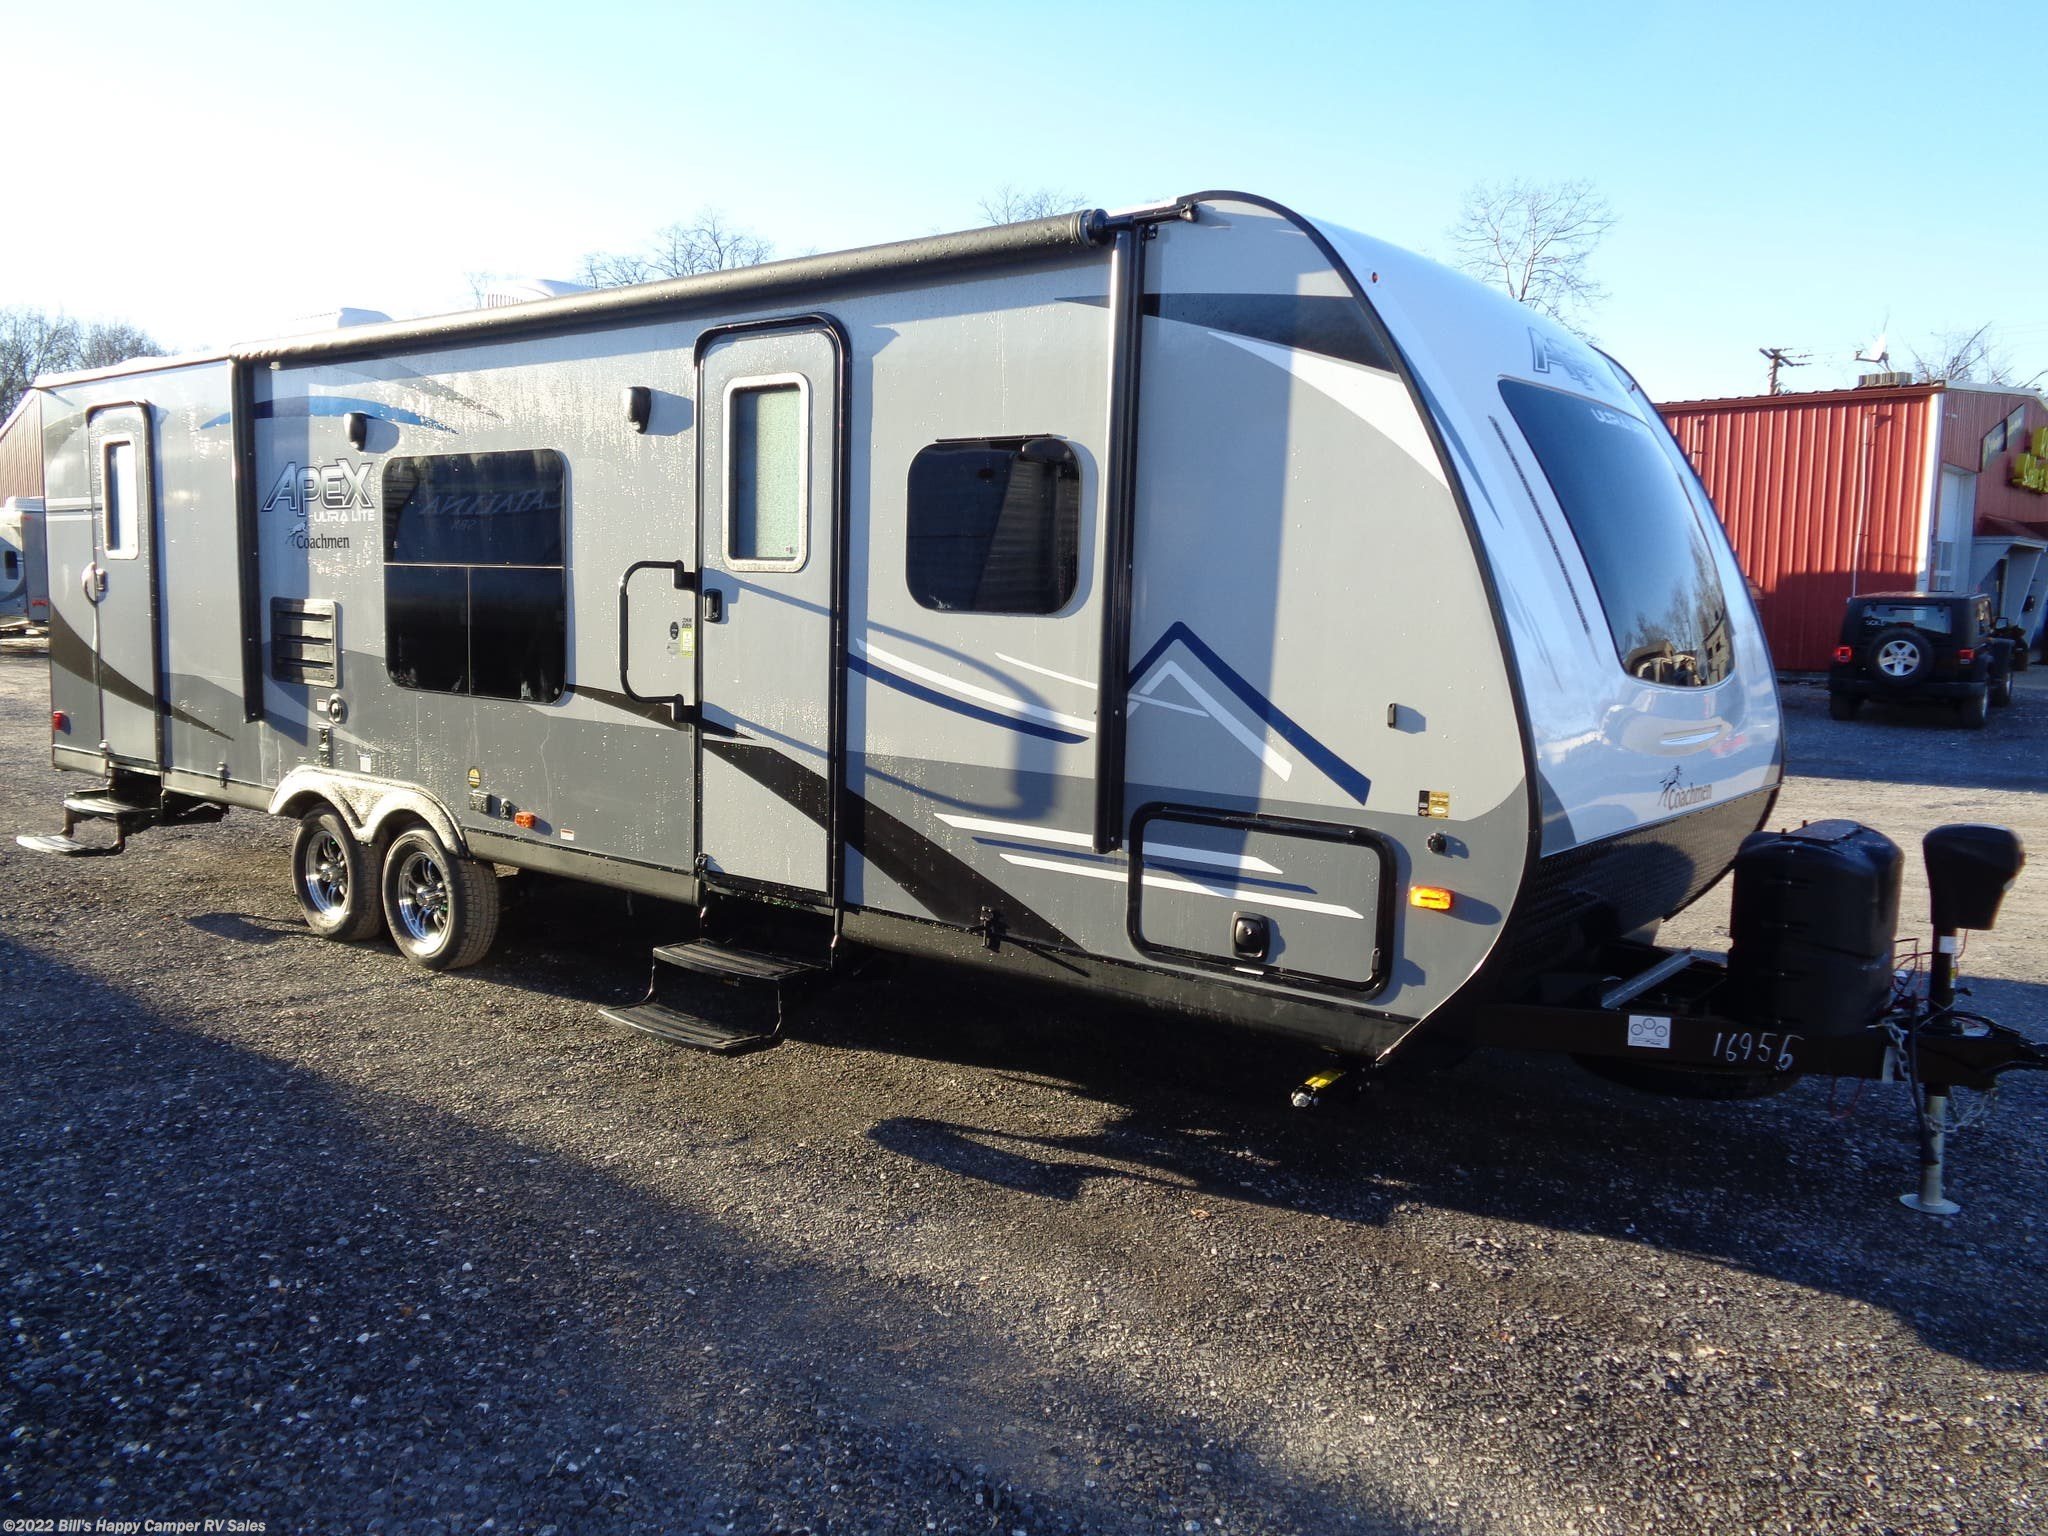 #016955 - 2019 Coachmen Apex 288BHS for sale in Mill Hall PA